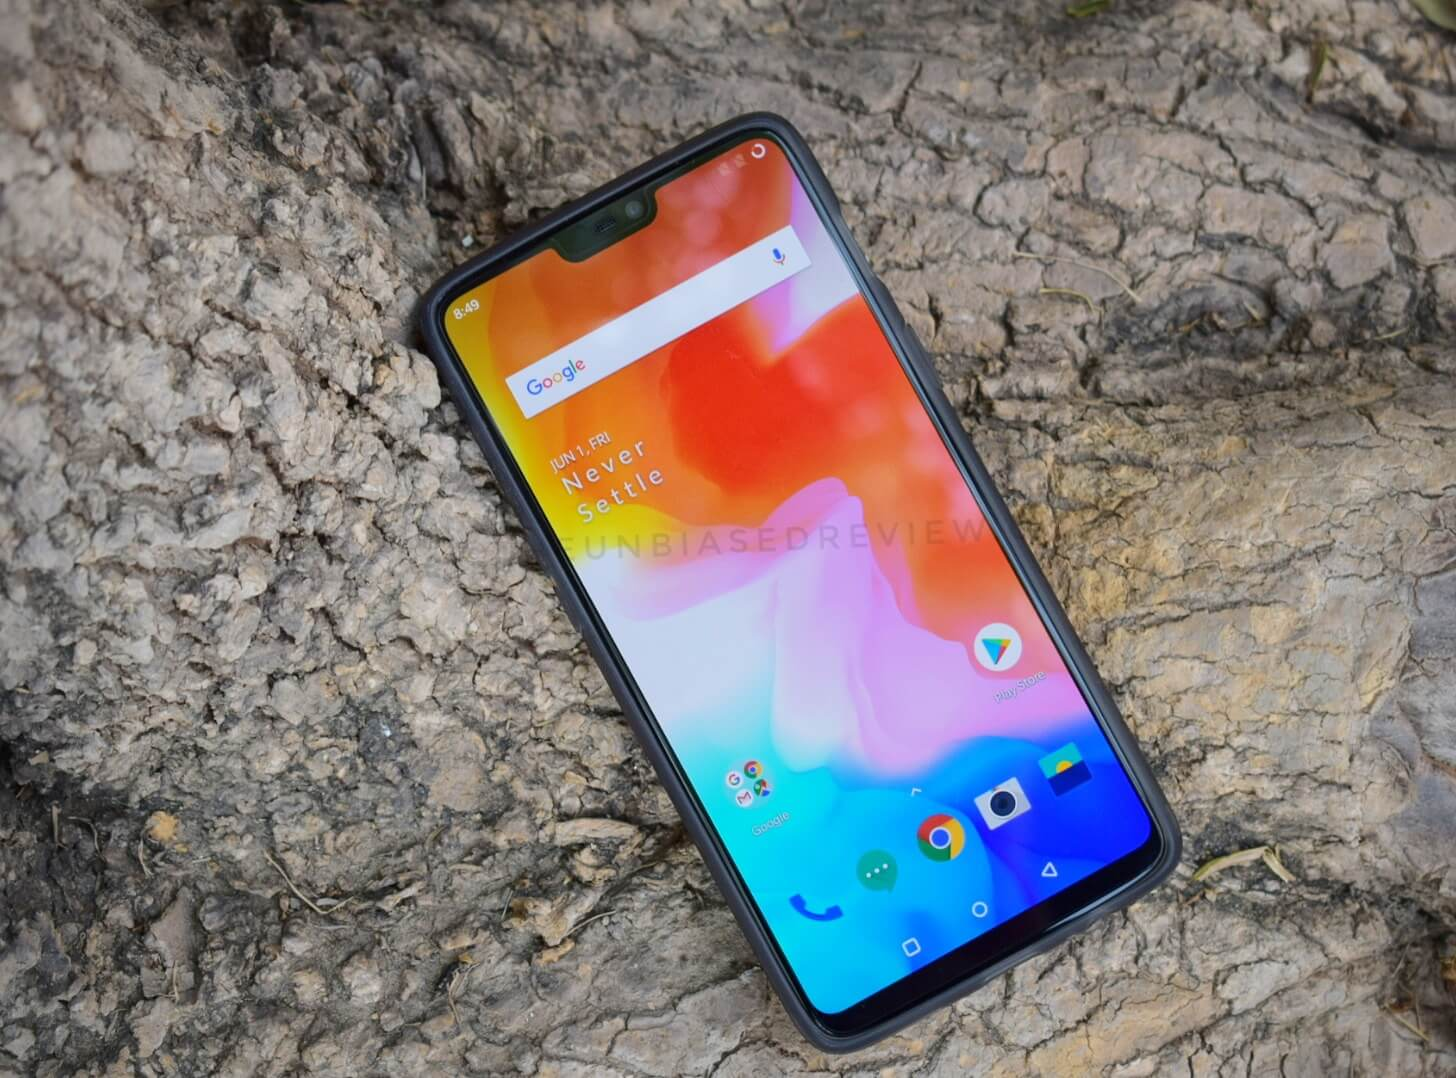 OnePlus, OnePlus 6, OnePlus 6 Review, OnePlus 6 Review images, OnePlus 6 unboxing, onePlus 6 battery life, OnePlus 6 specs, OnePlus 6 features, OnePlus 6 performance, OnePlus 6 pros and cons, OnePlus 6 verdict, should i buy OnePlus 6?